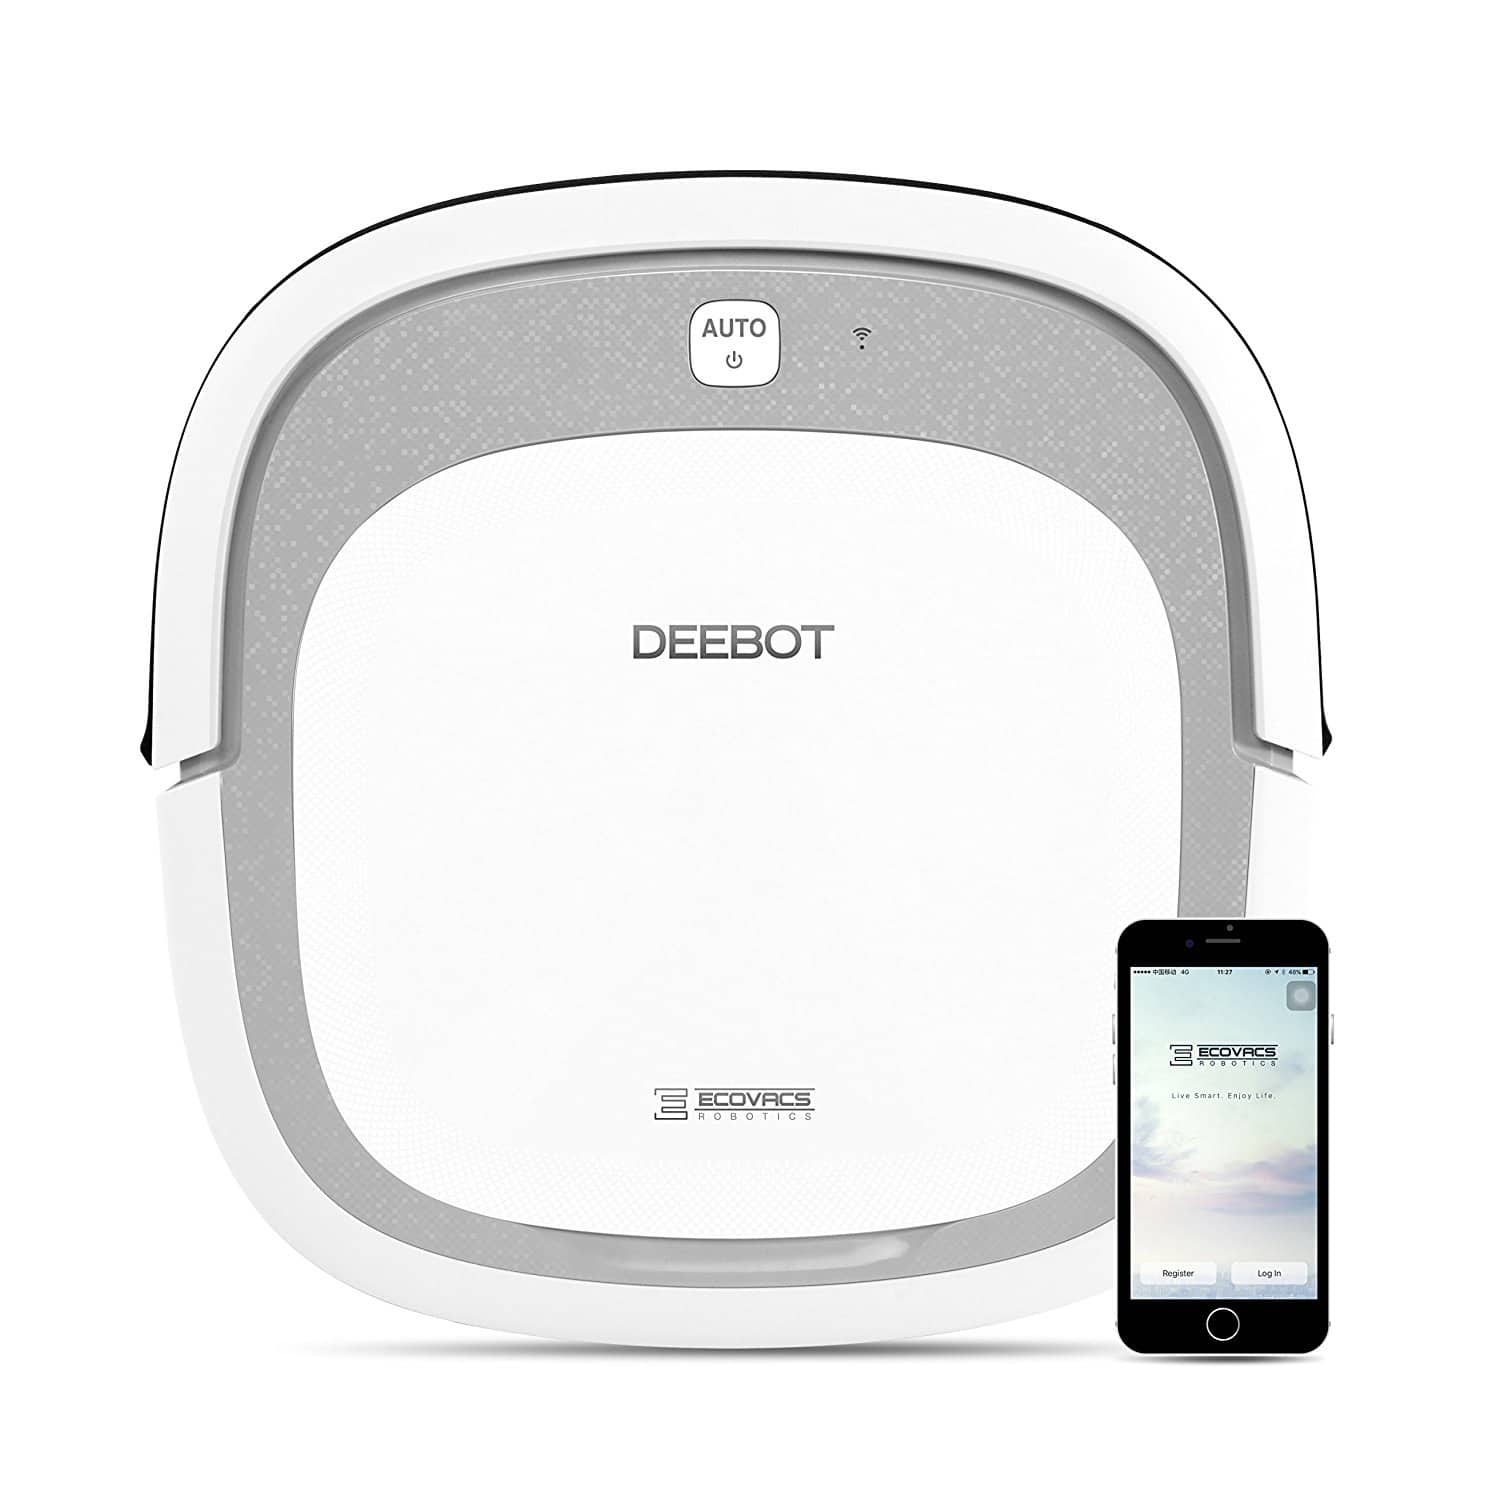 Ecovacs deebot slim2 floor robotic vacuum cleaner with dry mopping $127.43